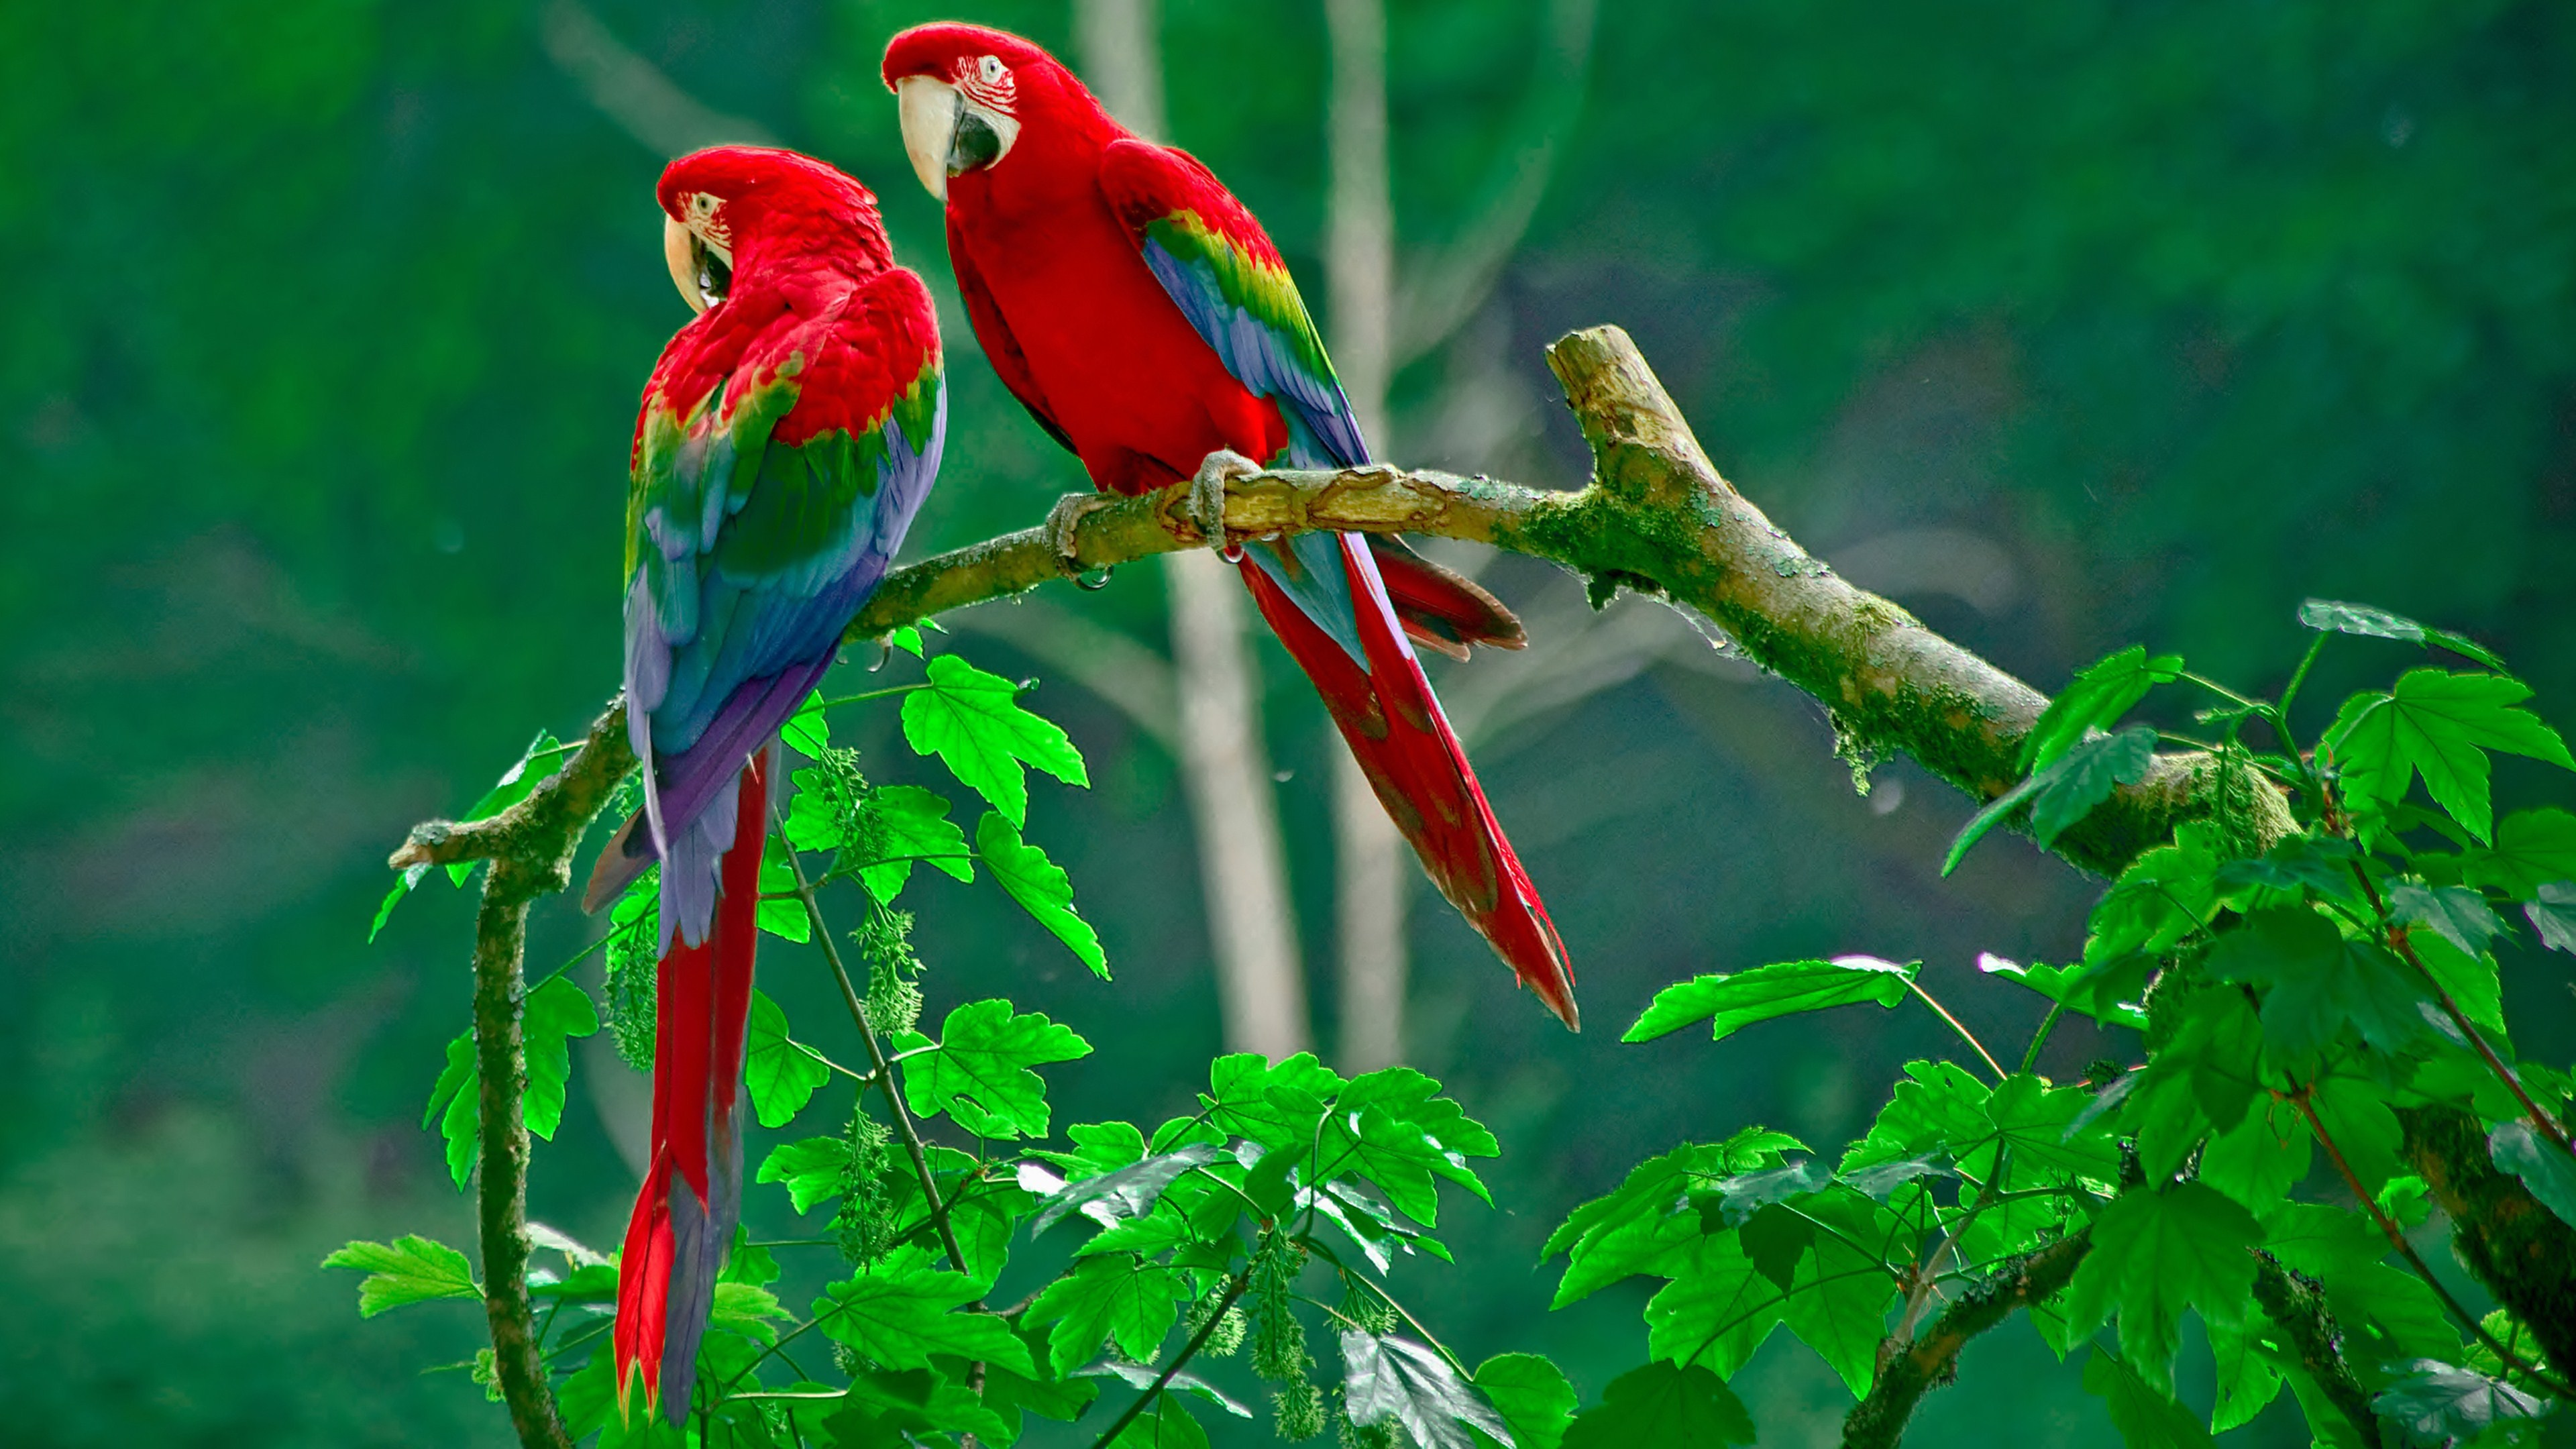 252 Parrot HD Wallpapers Background Images 3840x2160